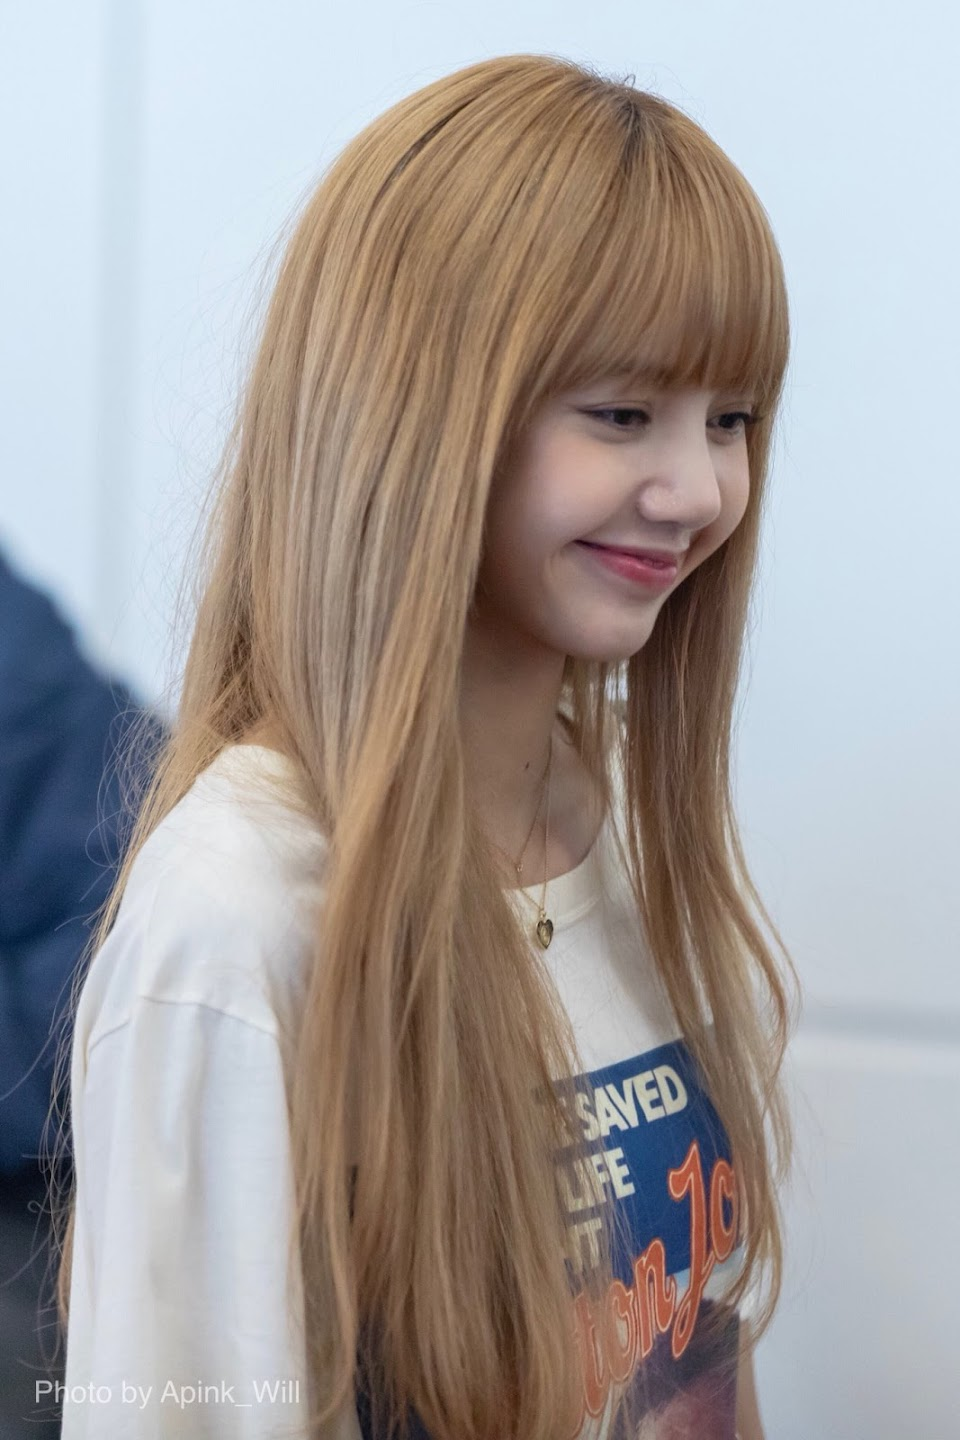 1-BLACKPINK-Lisa-Airport-Photo-17-September-2018-Haneda-Japan